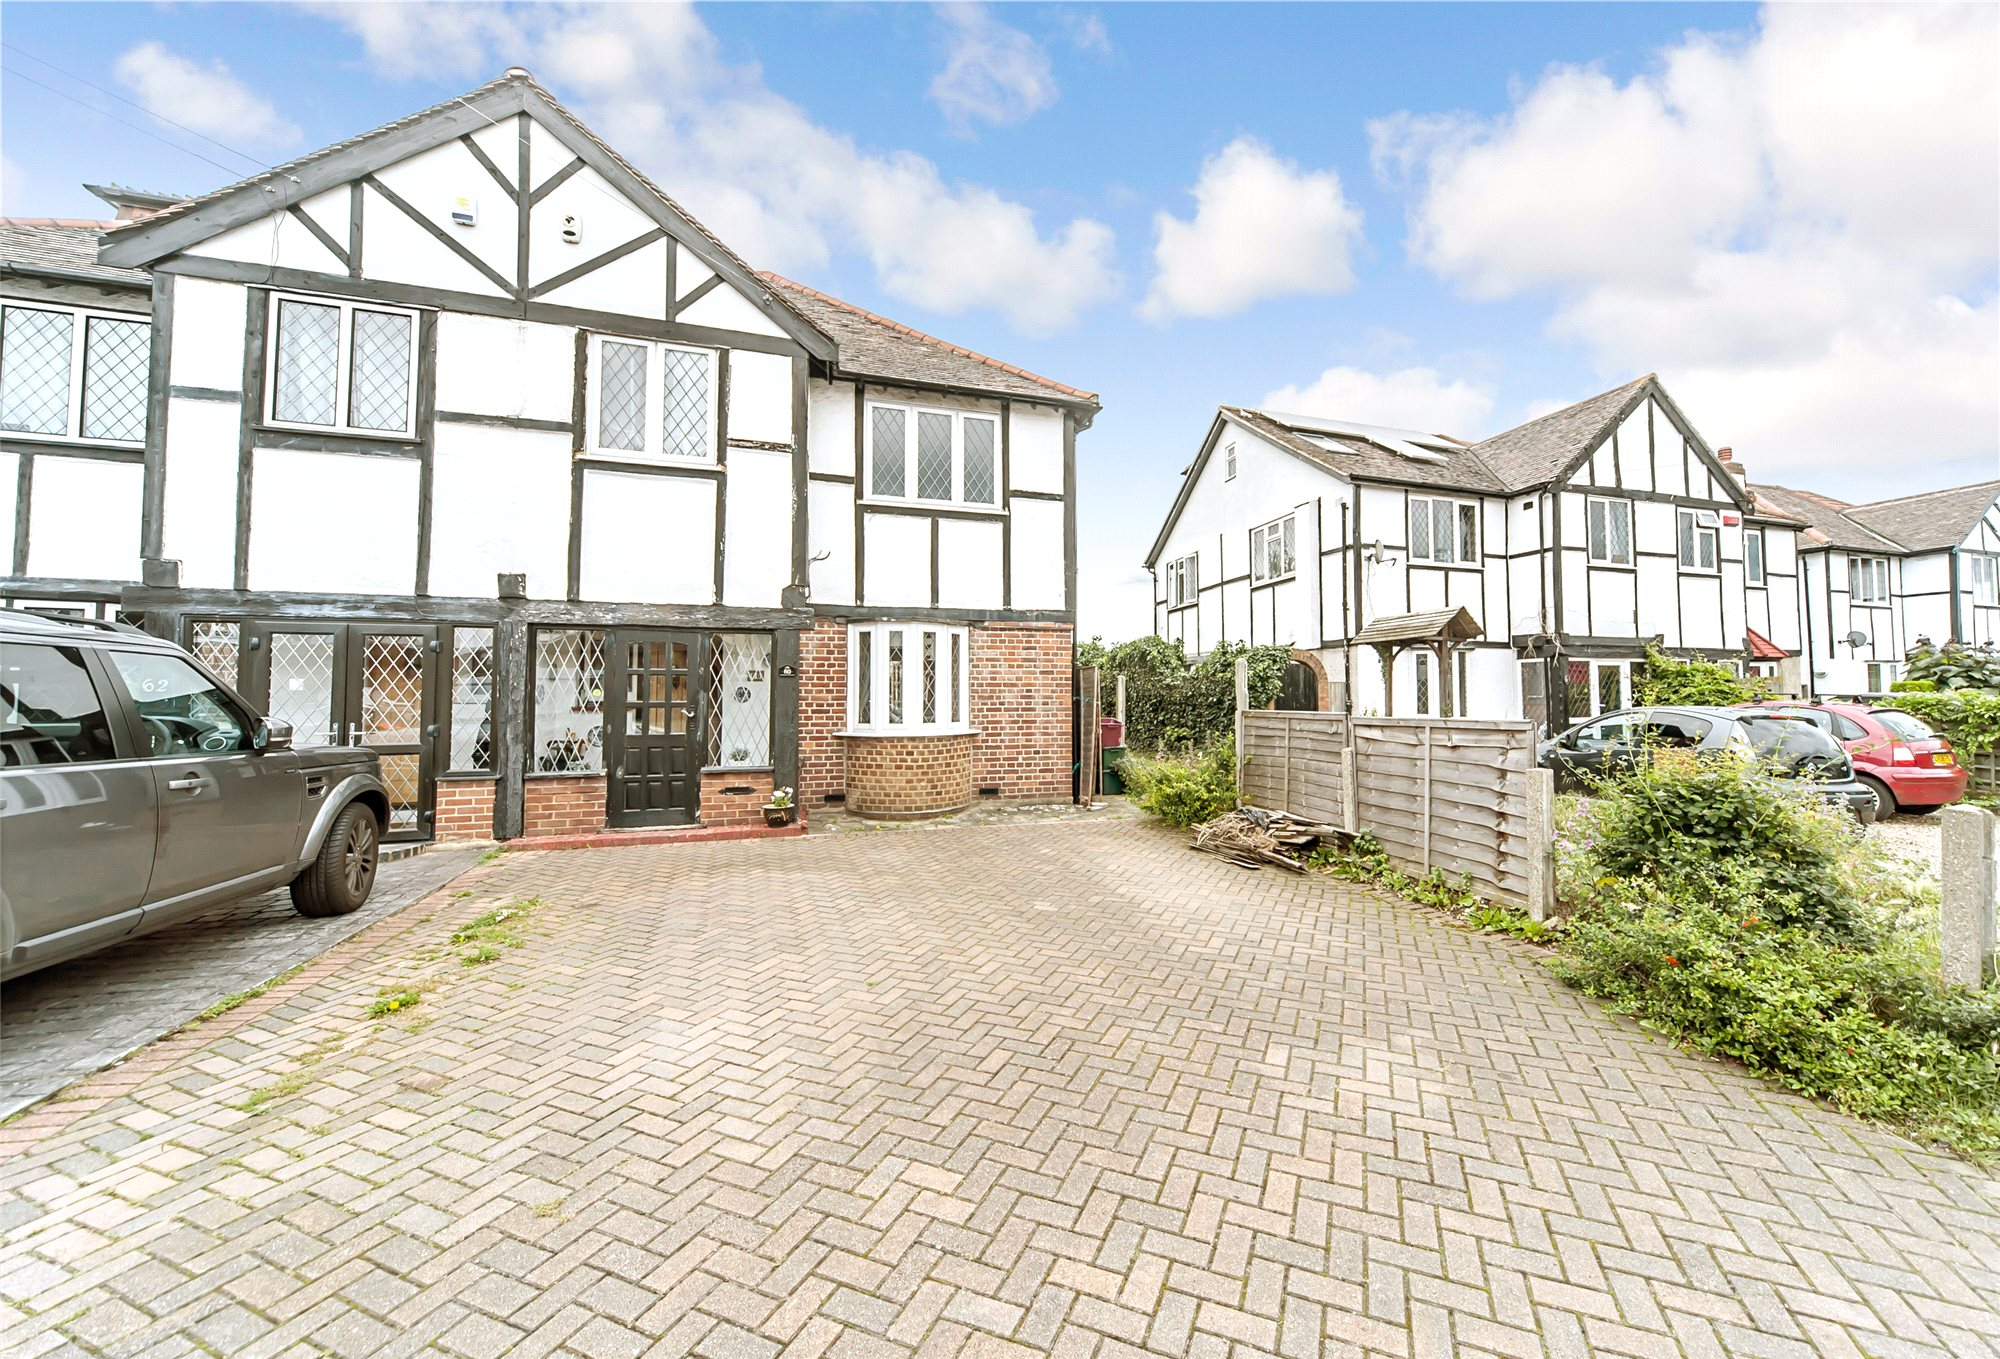 Blendon Road, Bxley, Kent, DA5